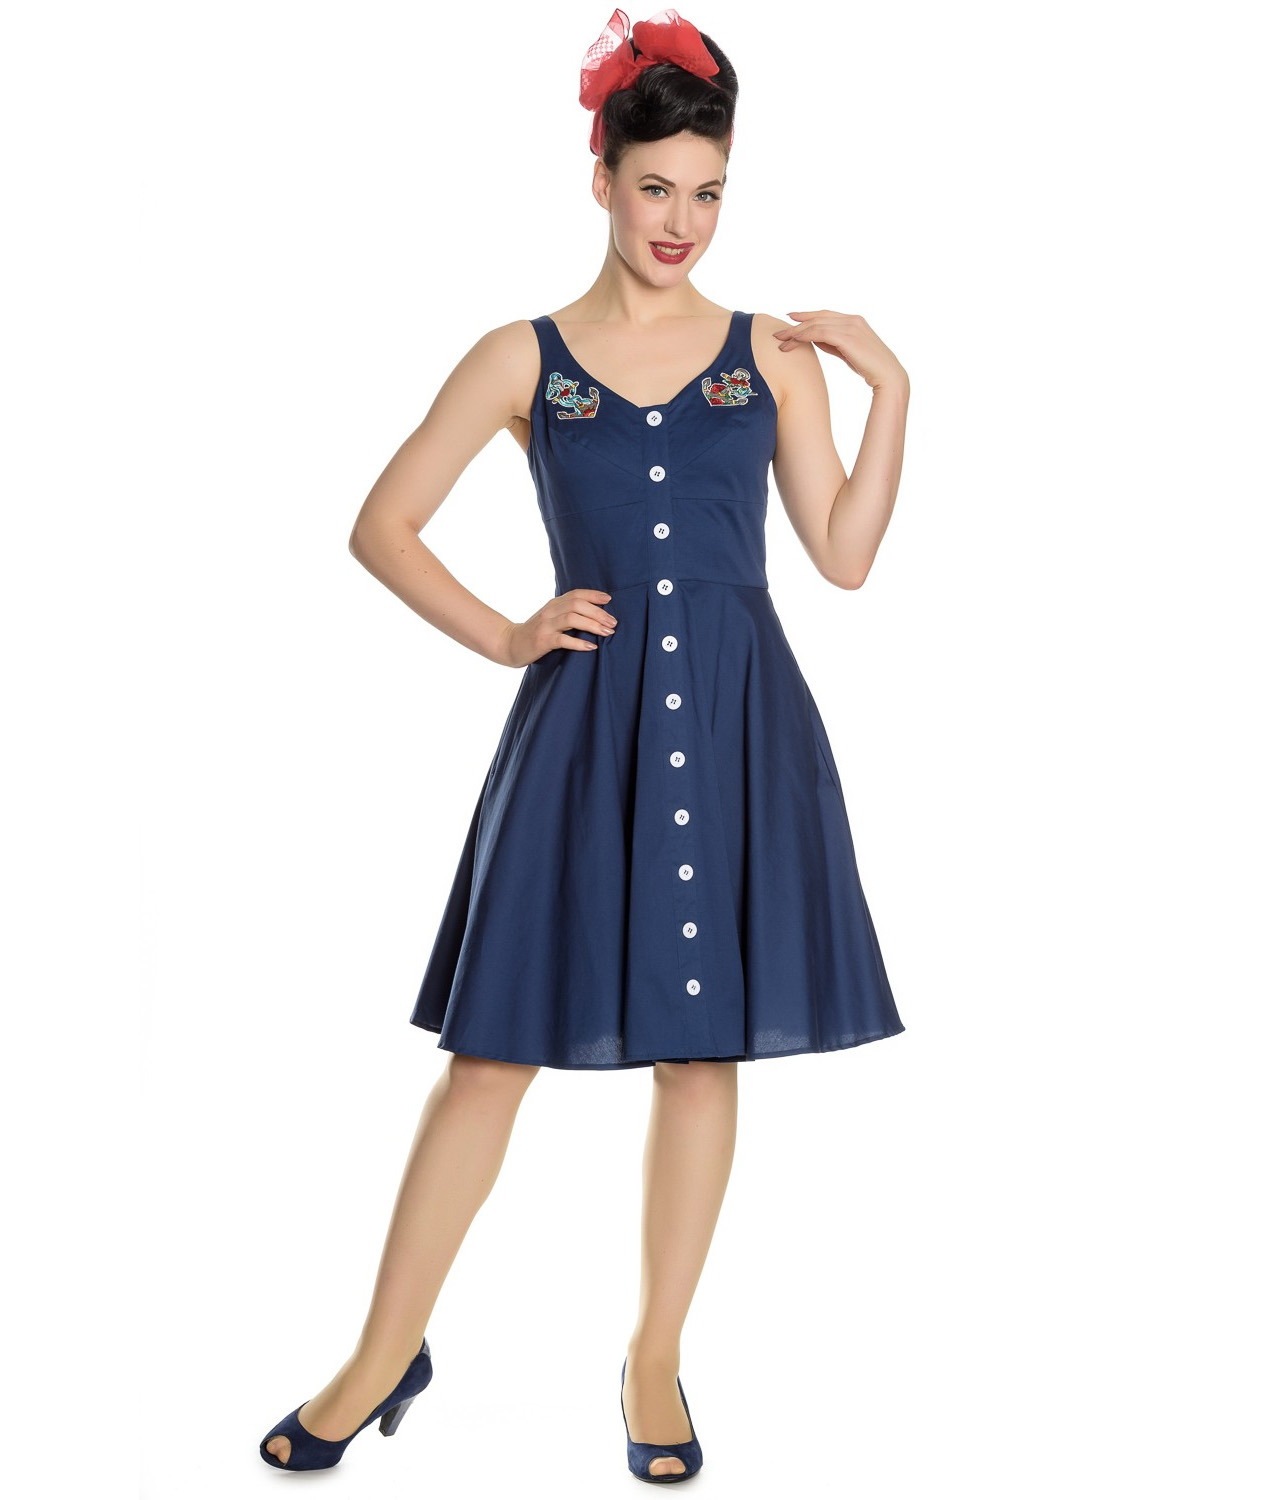 Hell-Bunny-Vintage-50s-Pin-Up-Dress-Navy-Blue-SELA-Nautical-Anchors-All-Sizes thumbnail 19